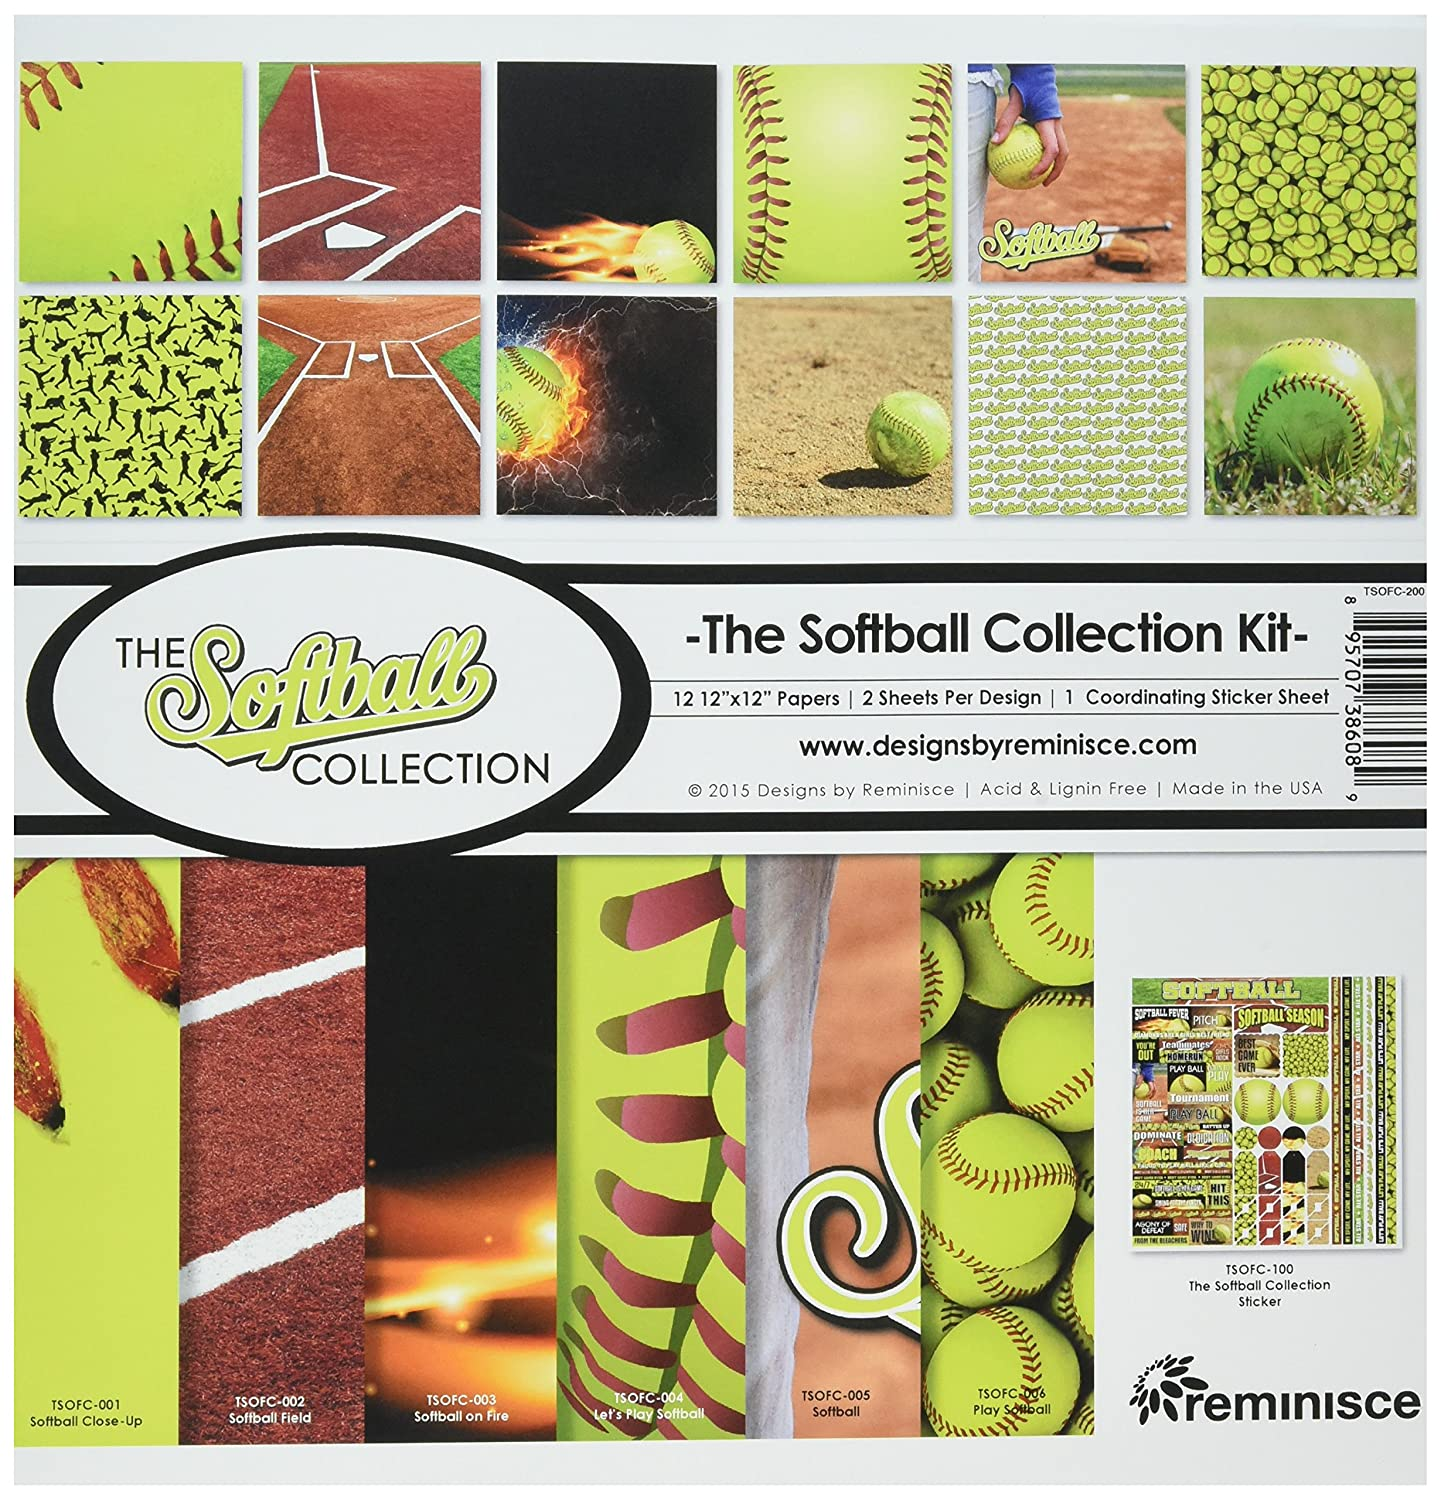 Reminisce TSOFC-200 Softball Collection Kit, 12